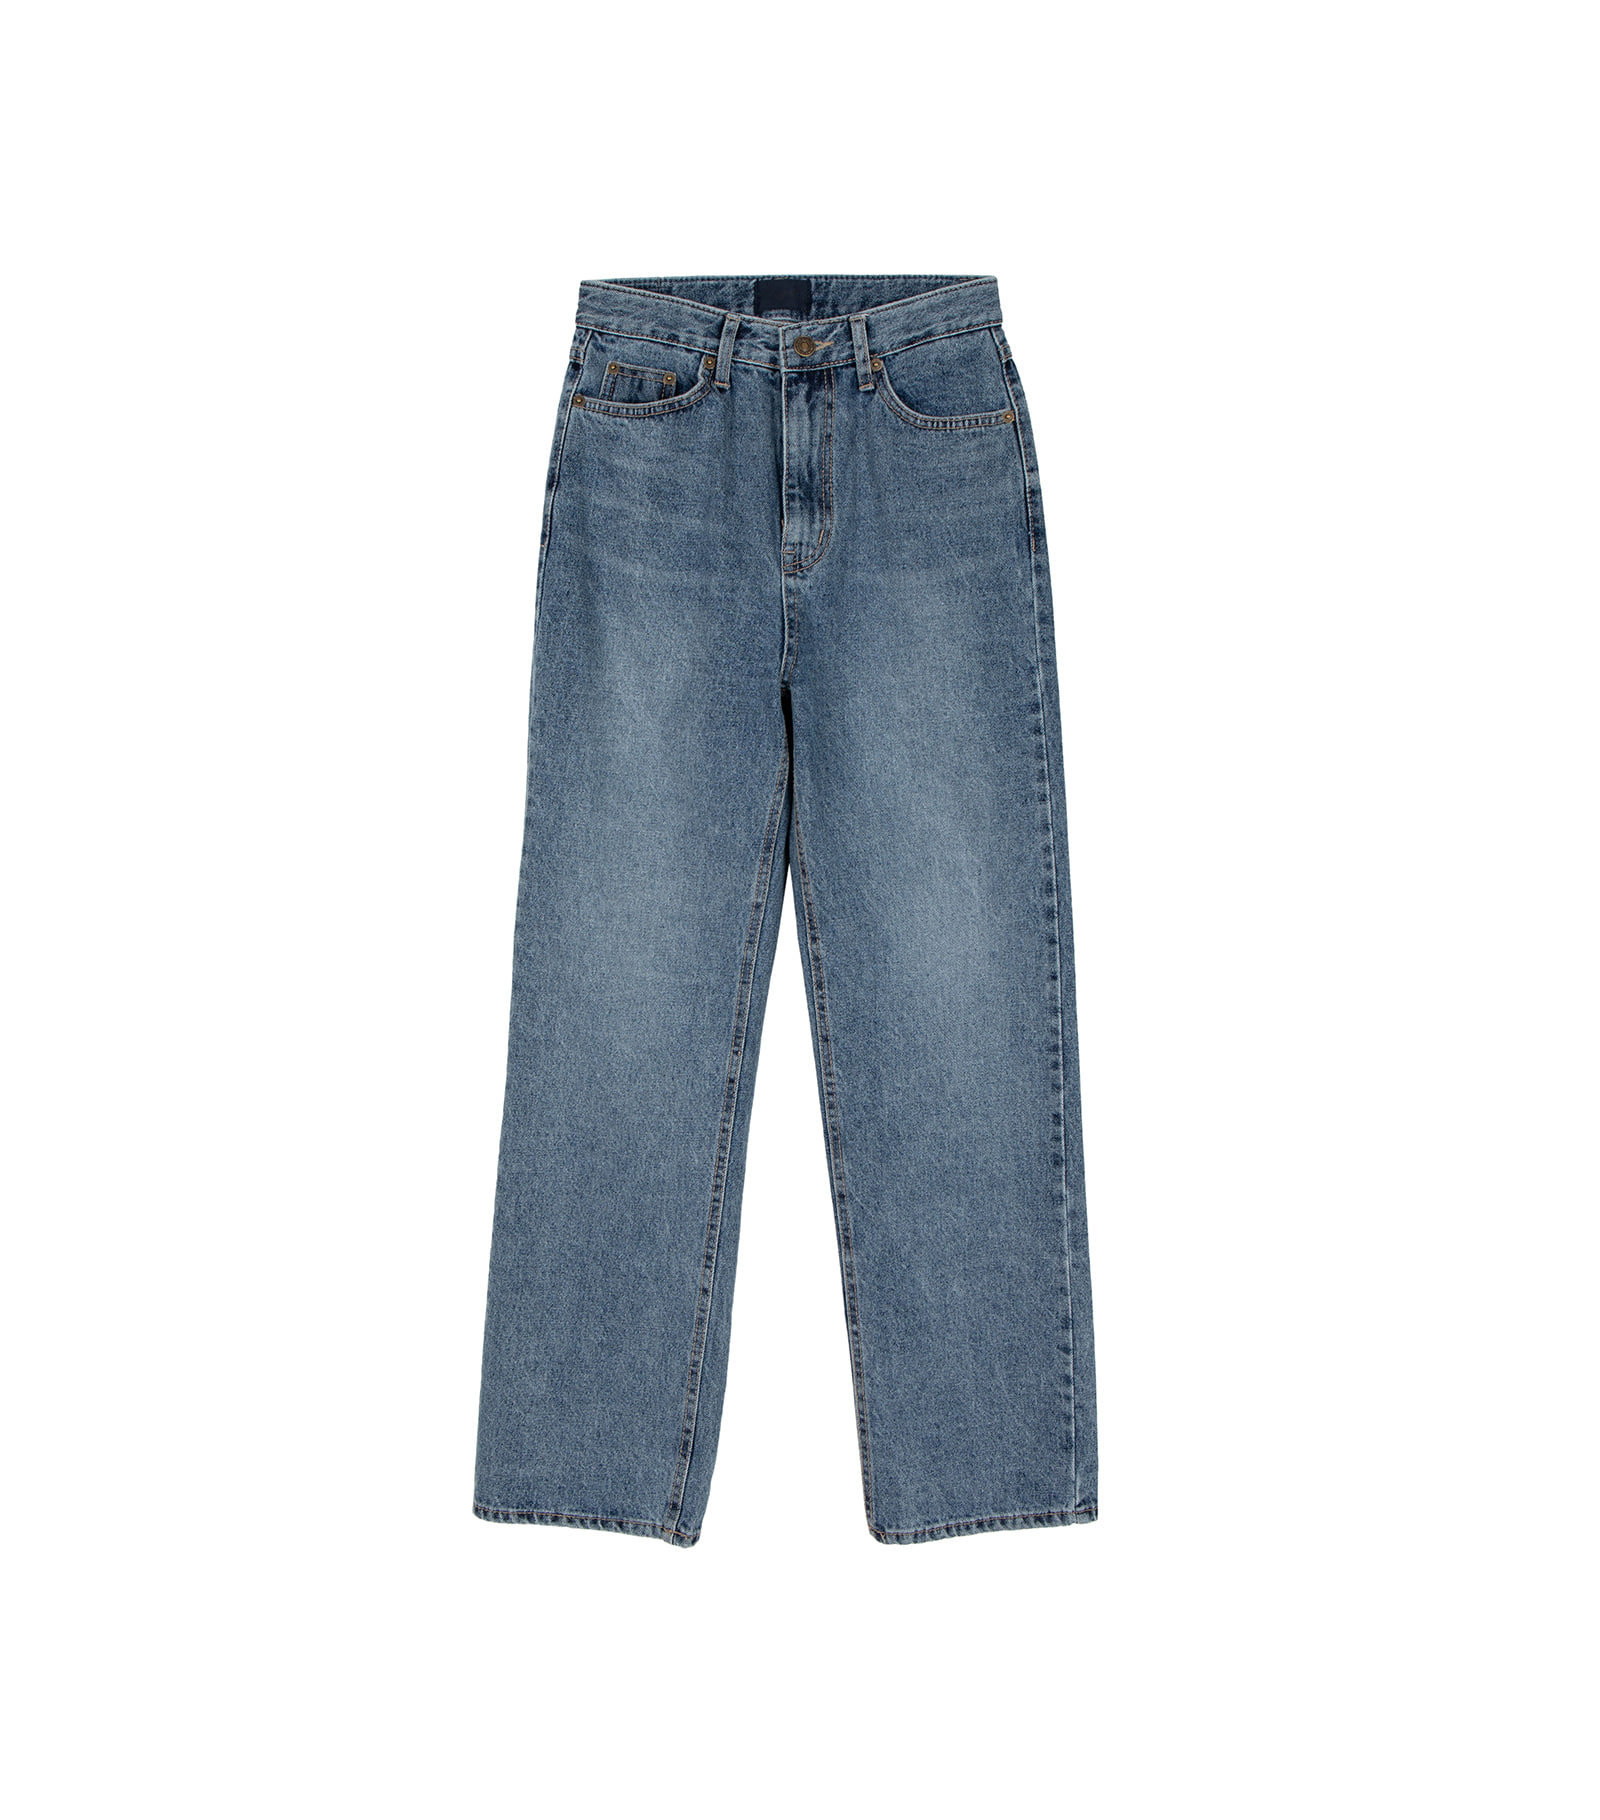 Steel Faded straight jeans